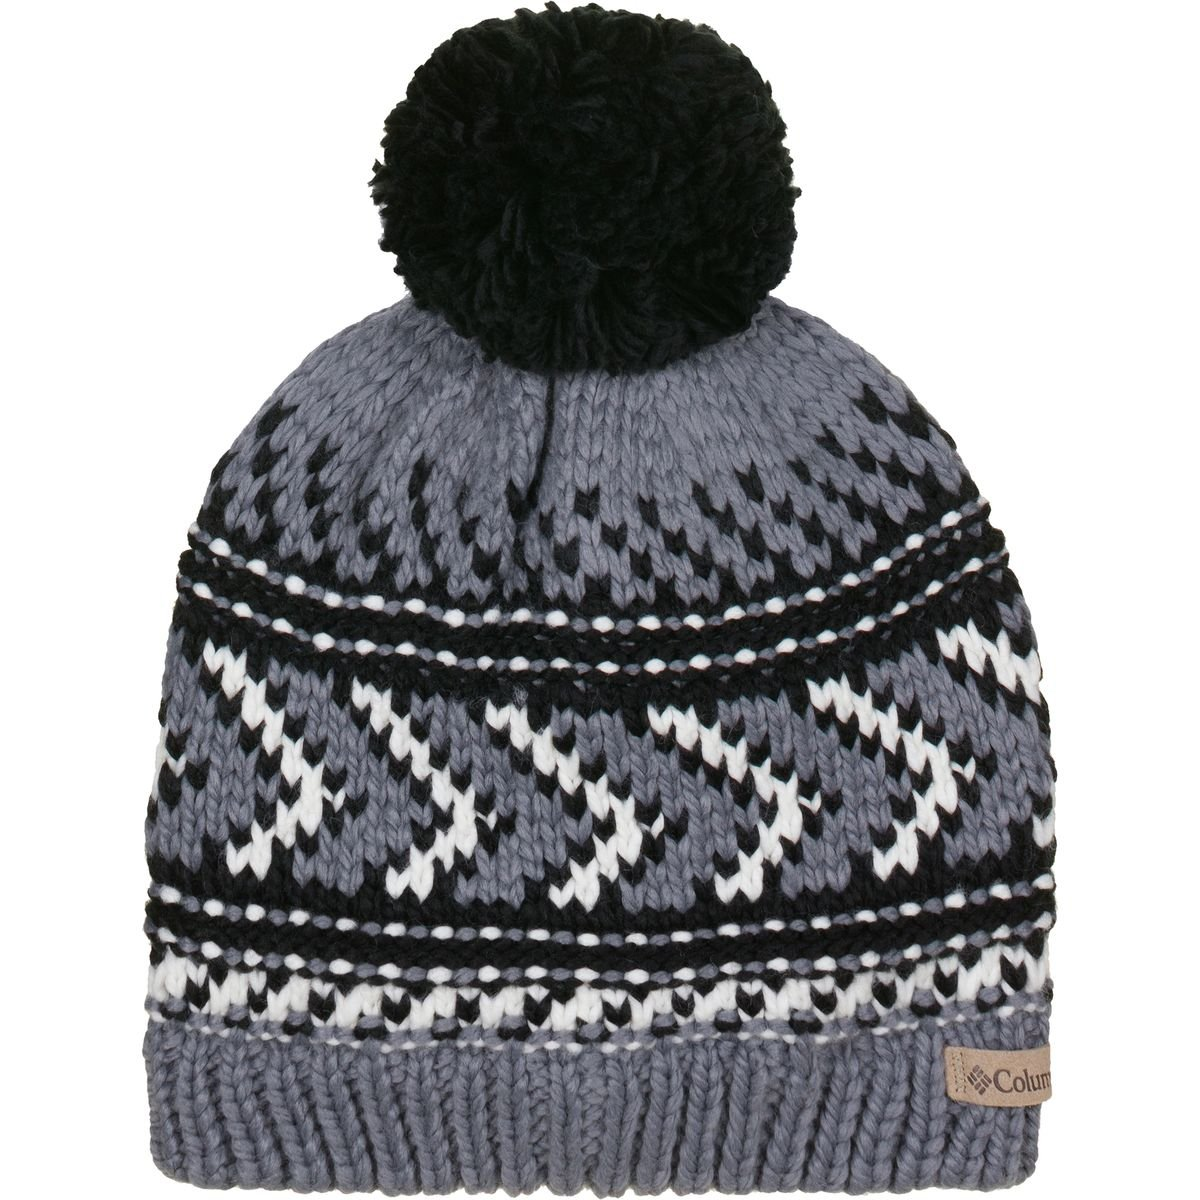 Columbia Women's Alpine Vista Beanie, Black, O/S